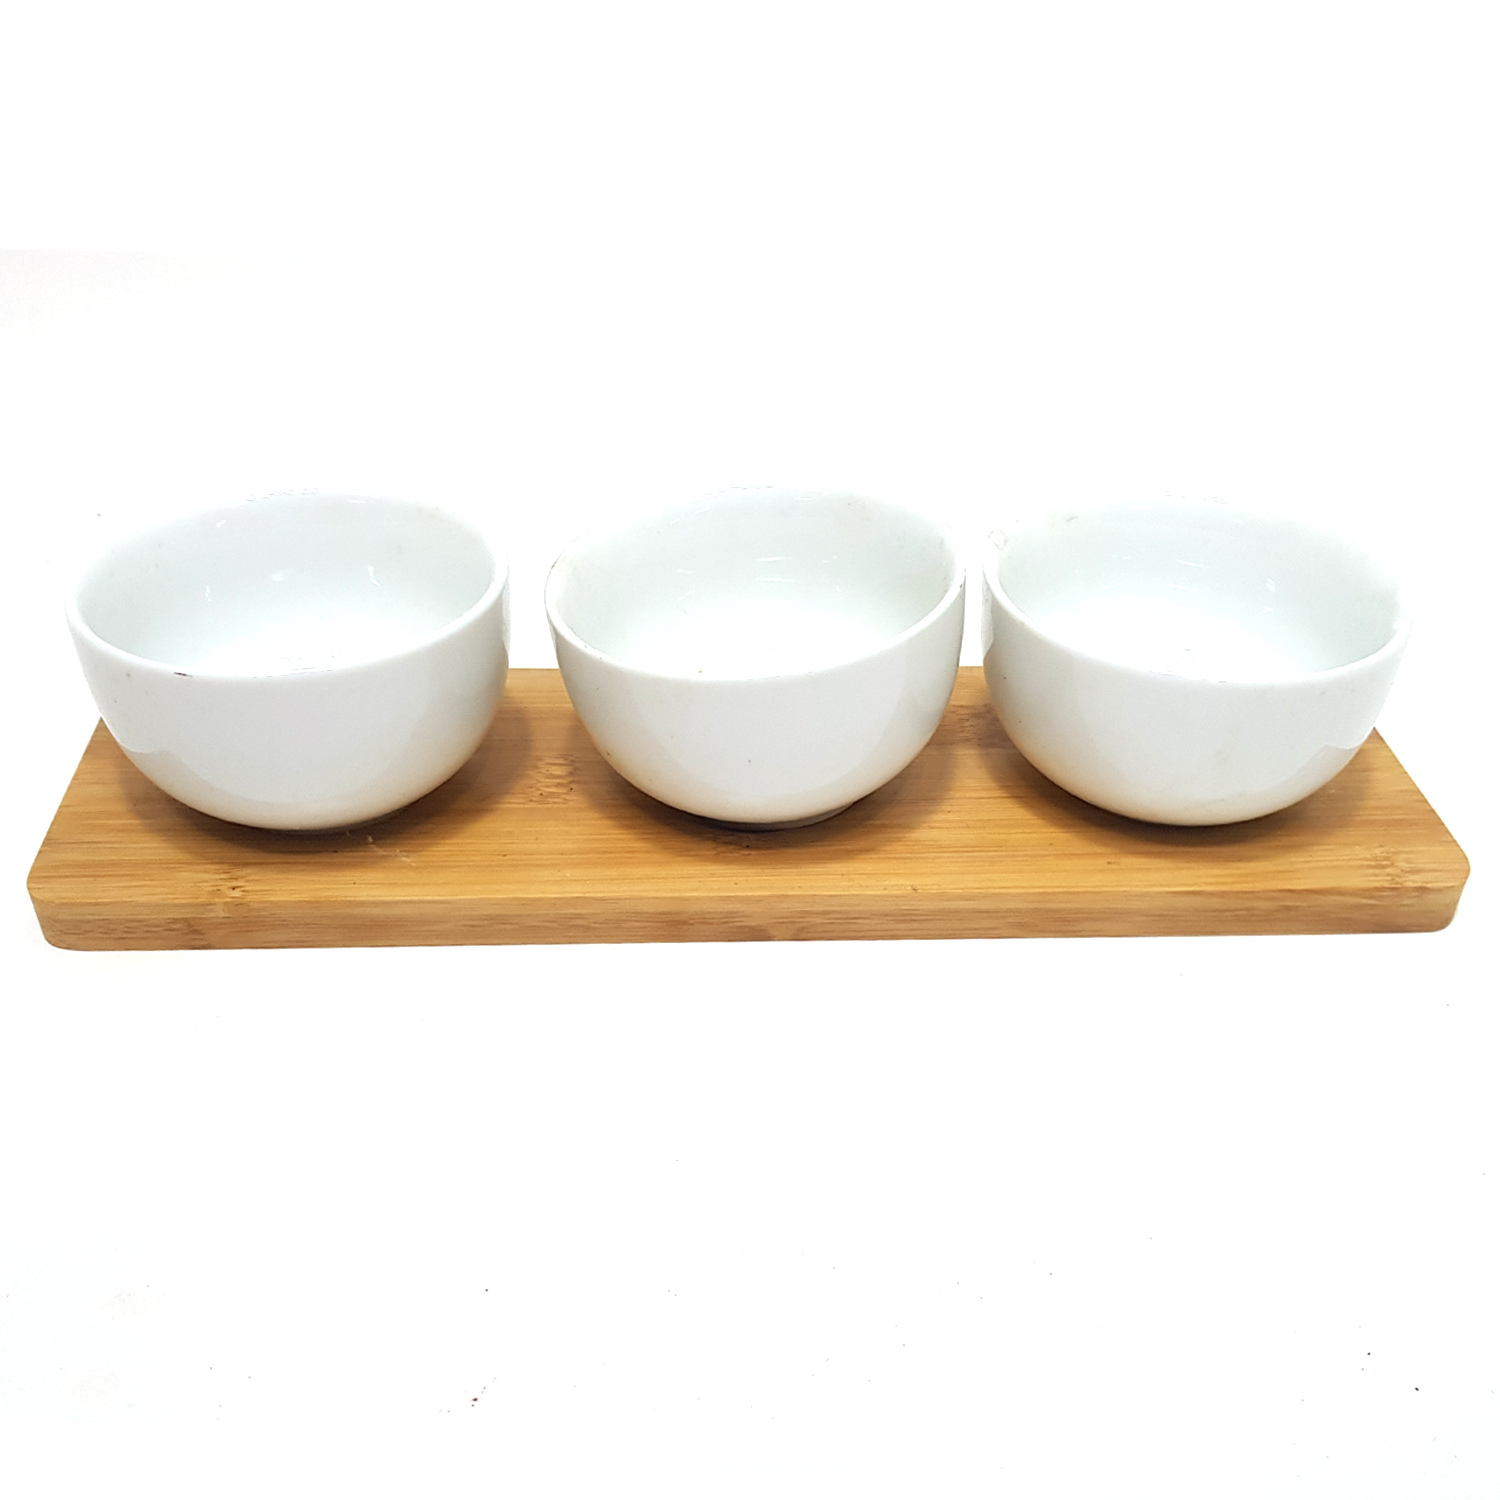 3.5in x 3pcs Round Bowl Set With Wooden Stand #31907070099